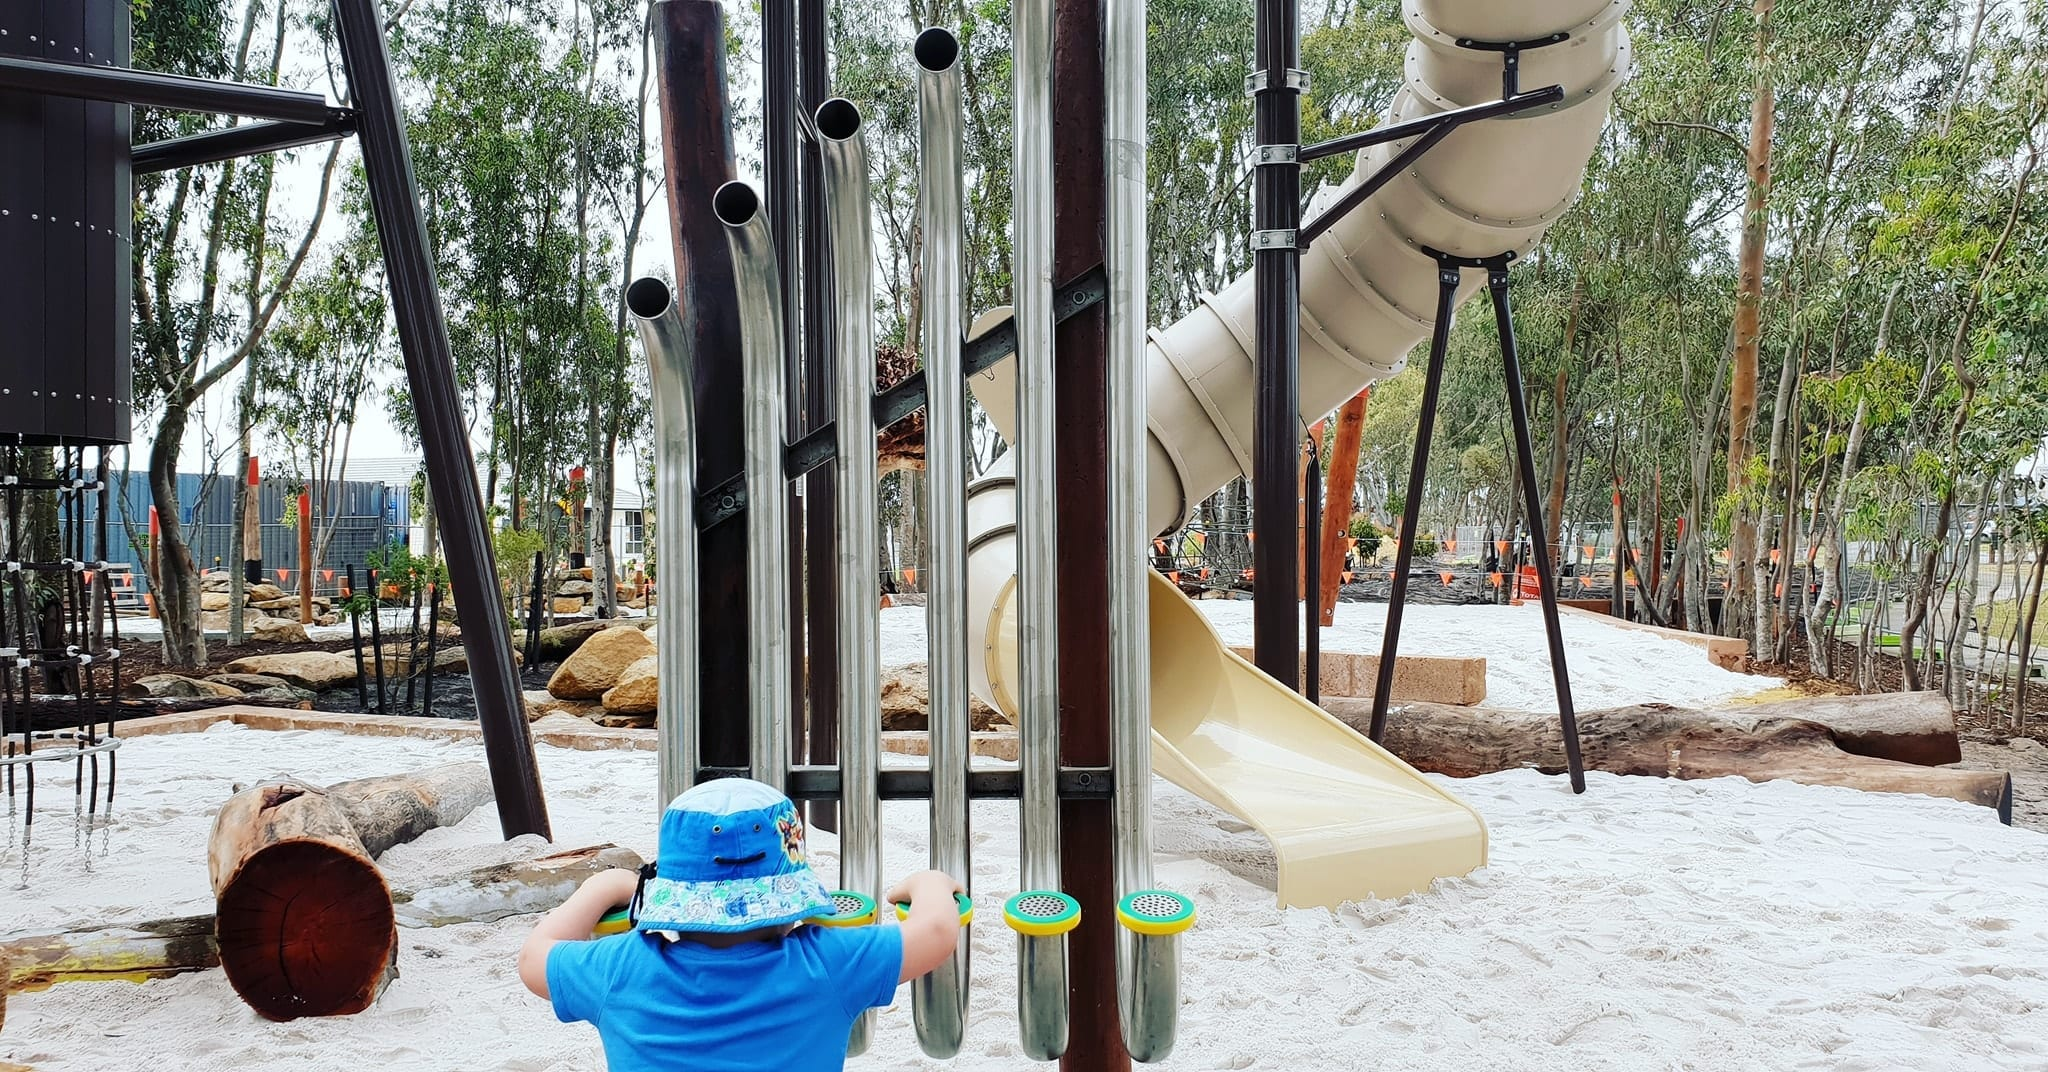 The Rivergums Adventure Park, Baldivis